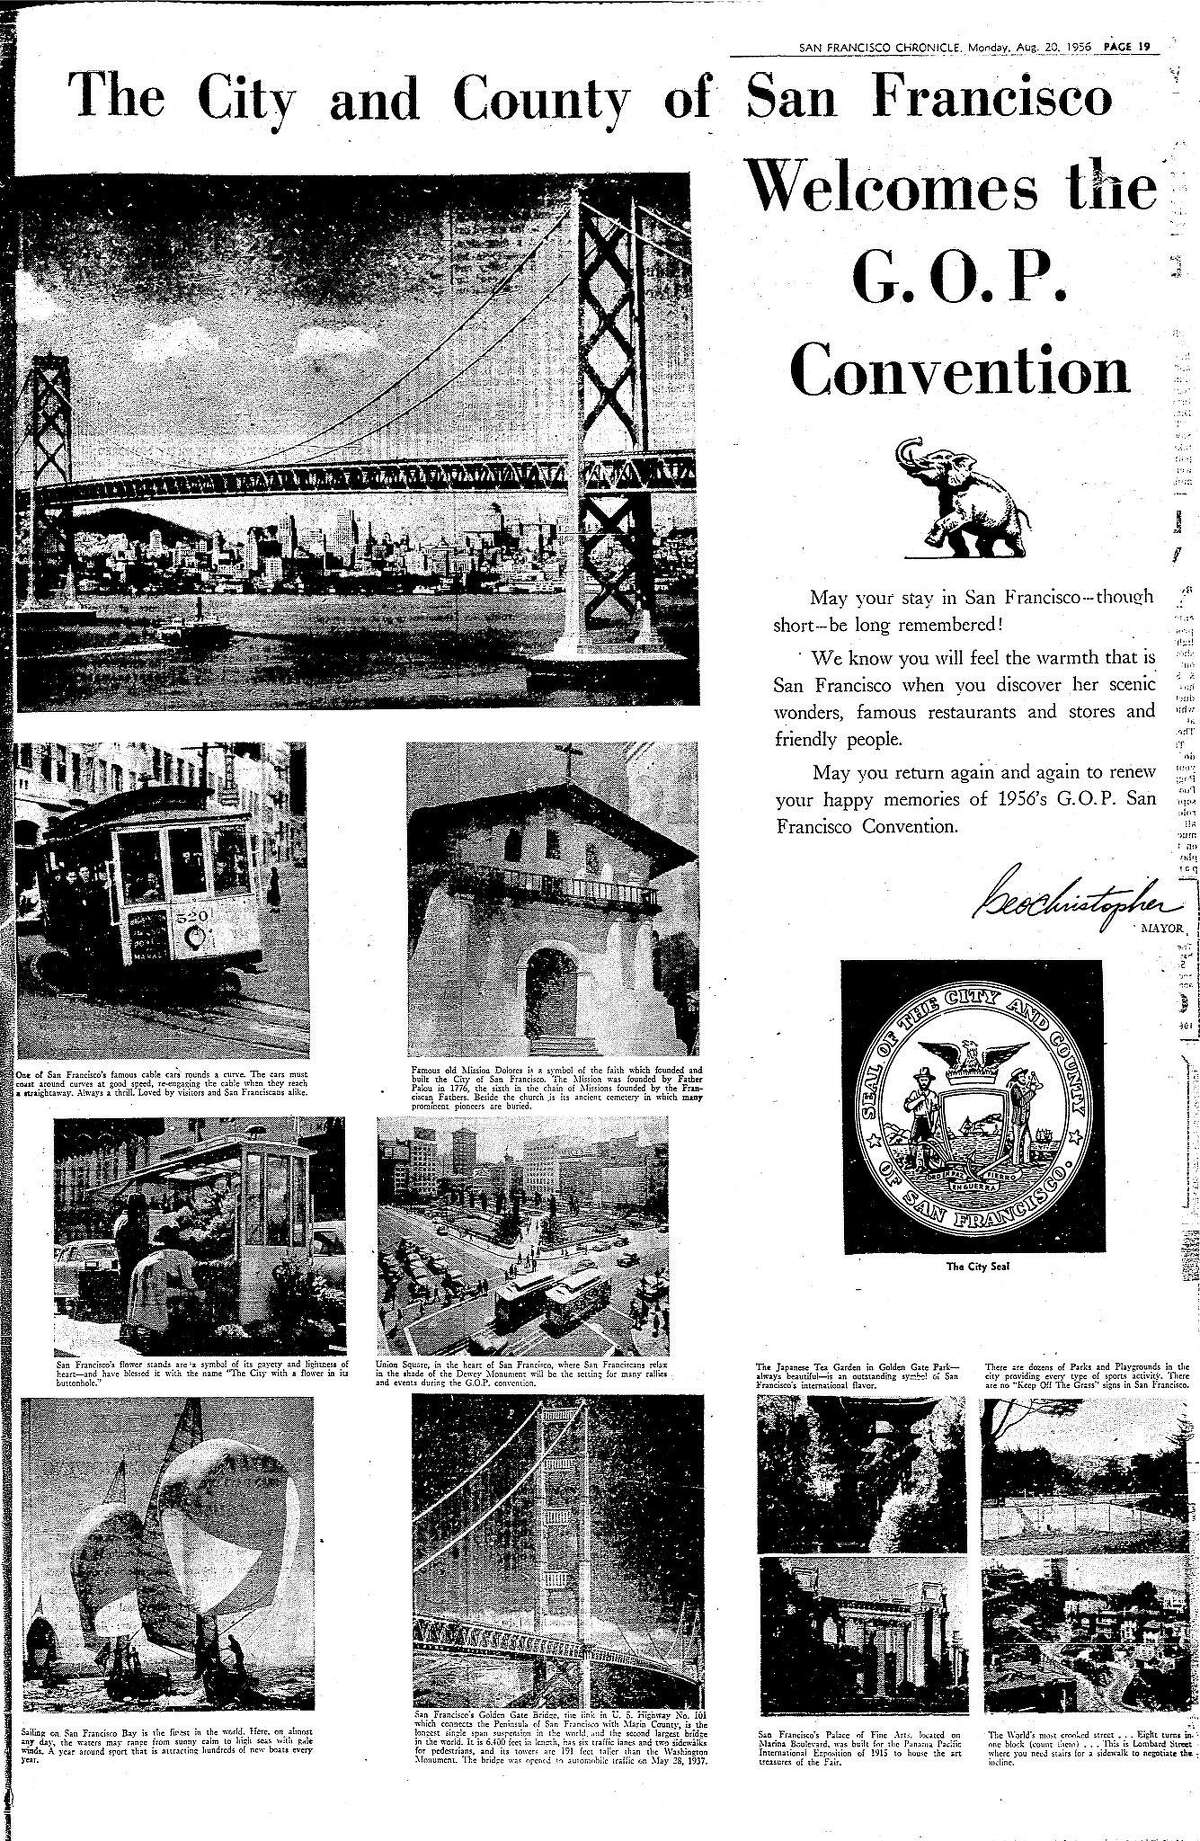 An August 20, 1956 full page ad Welcoming the Republican National Convention list a number of popular tourist sites, including the crooked portion of Lombard Street